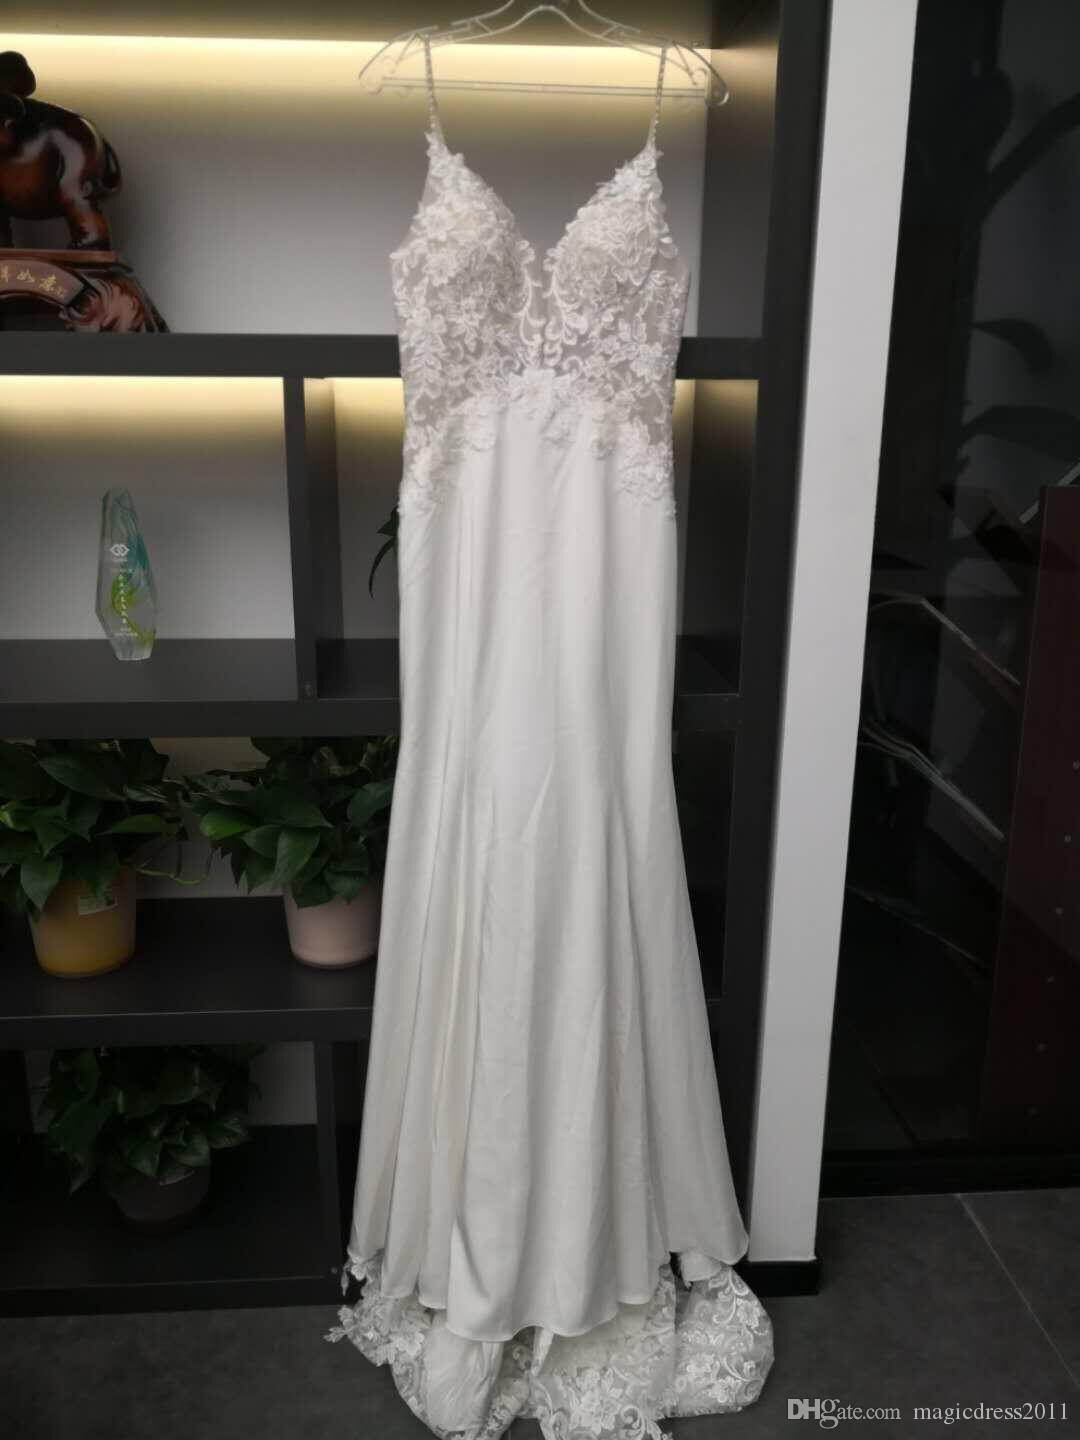 New Cheap Simple A Line Wedding Dresses French Lace Sexy Spaghetti Backless Floor Length Wedding Gowns Bridal Dress 100% Real Image 5934